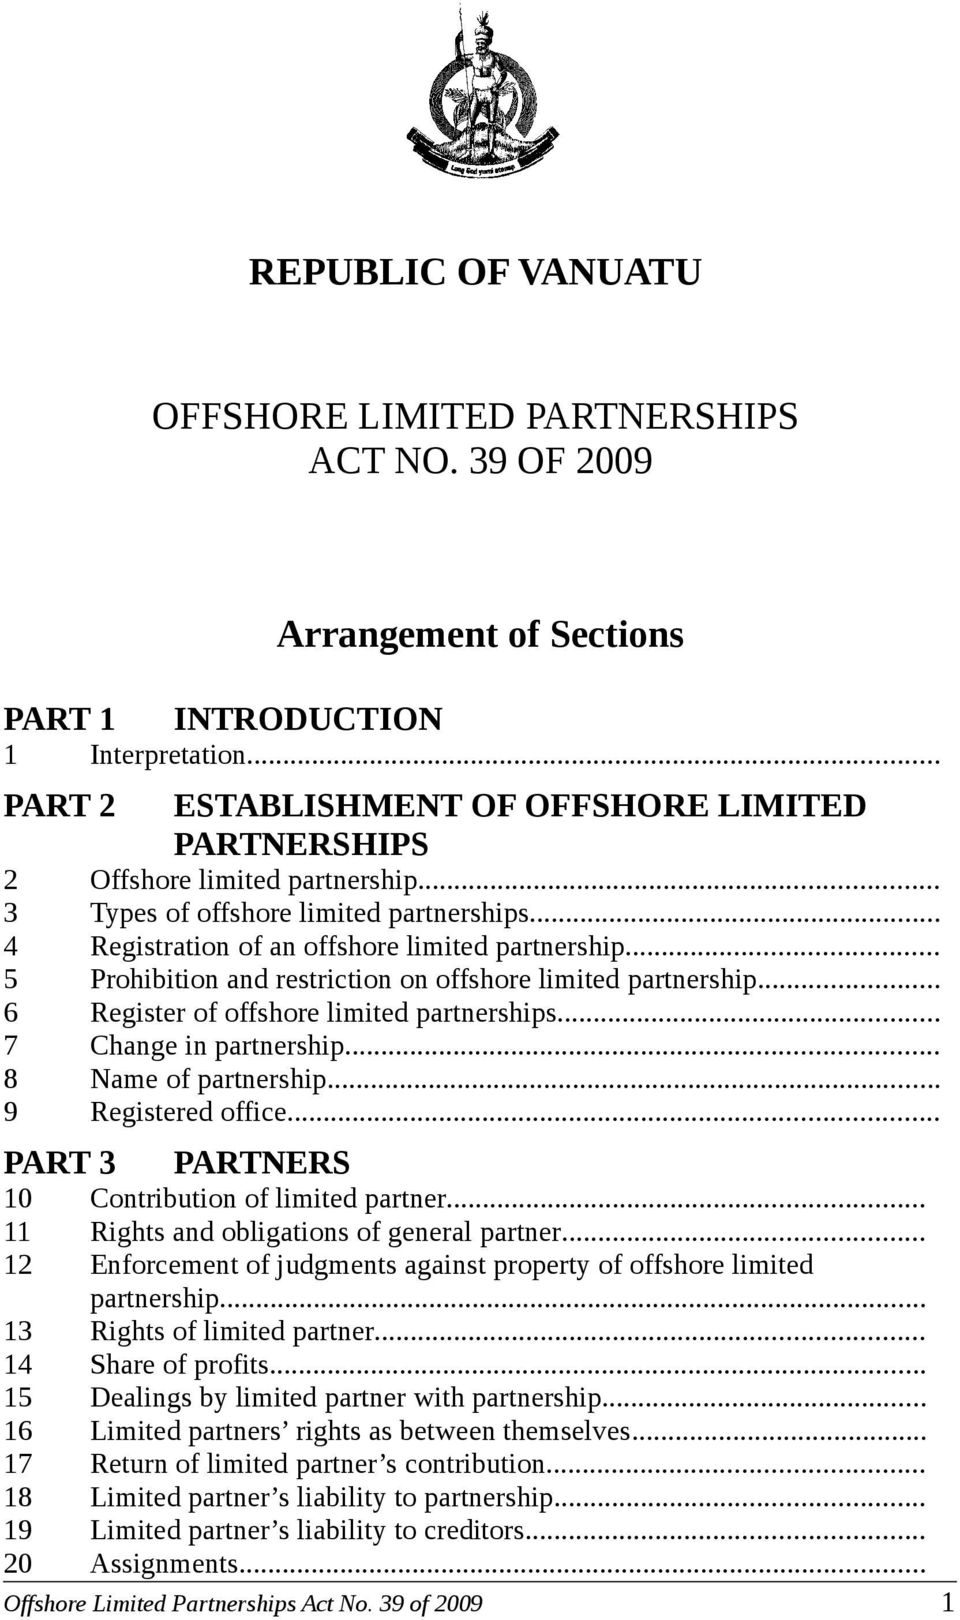 .. 5 Prohibition and restriction on offshore limited partnership... 6 Register of offshore limited partnerships... 7 Change in partnership... 8 Name of partnership... 9 Registered office.